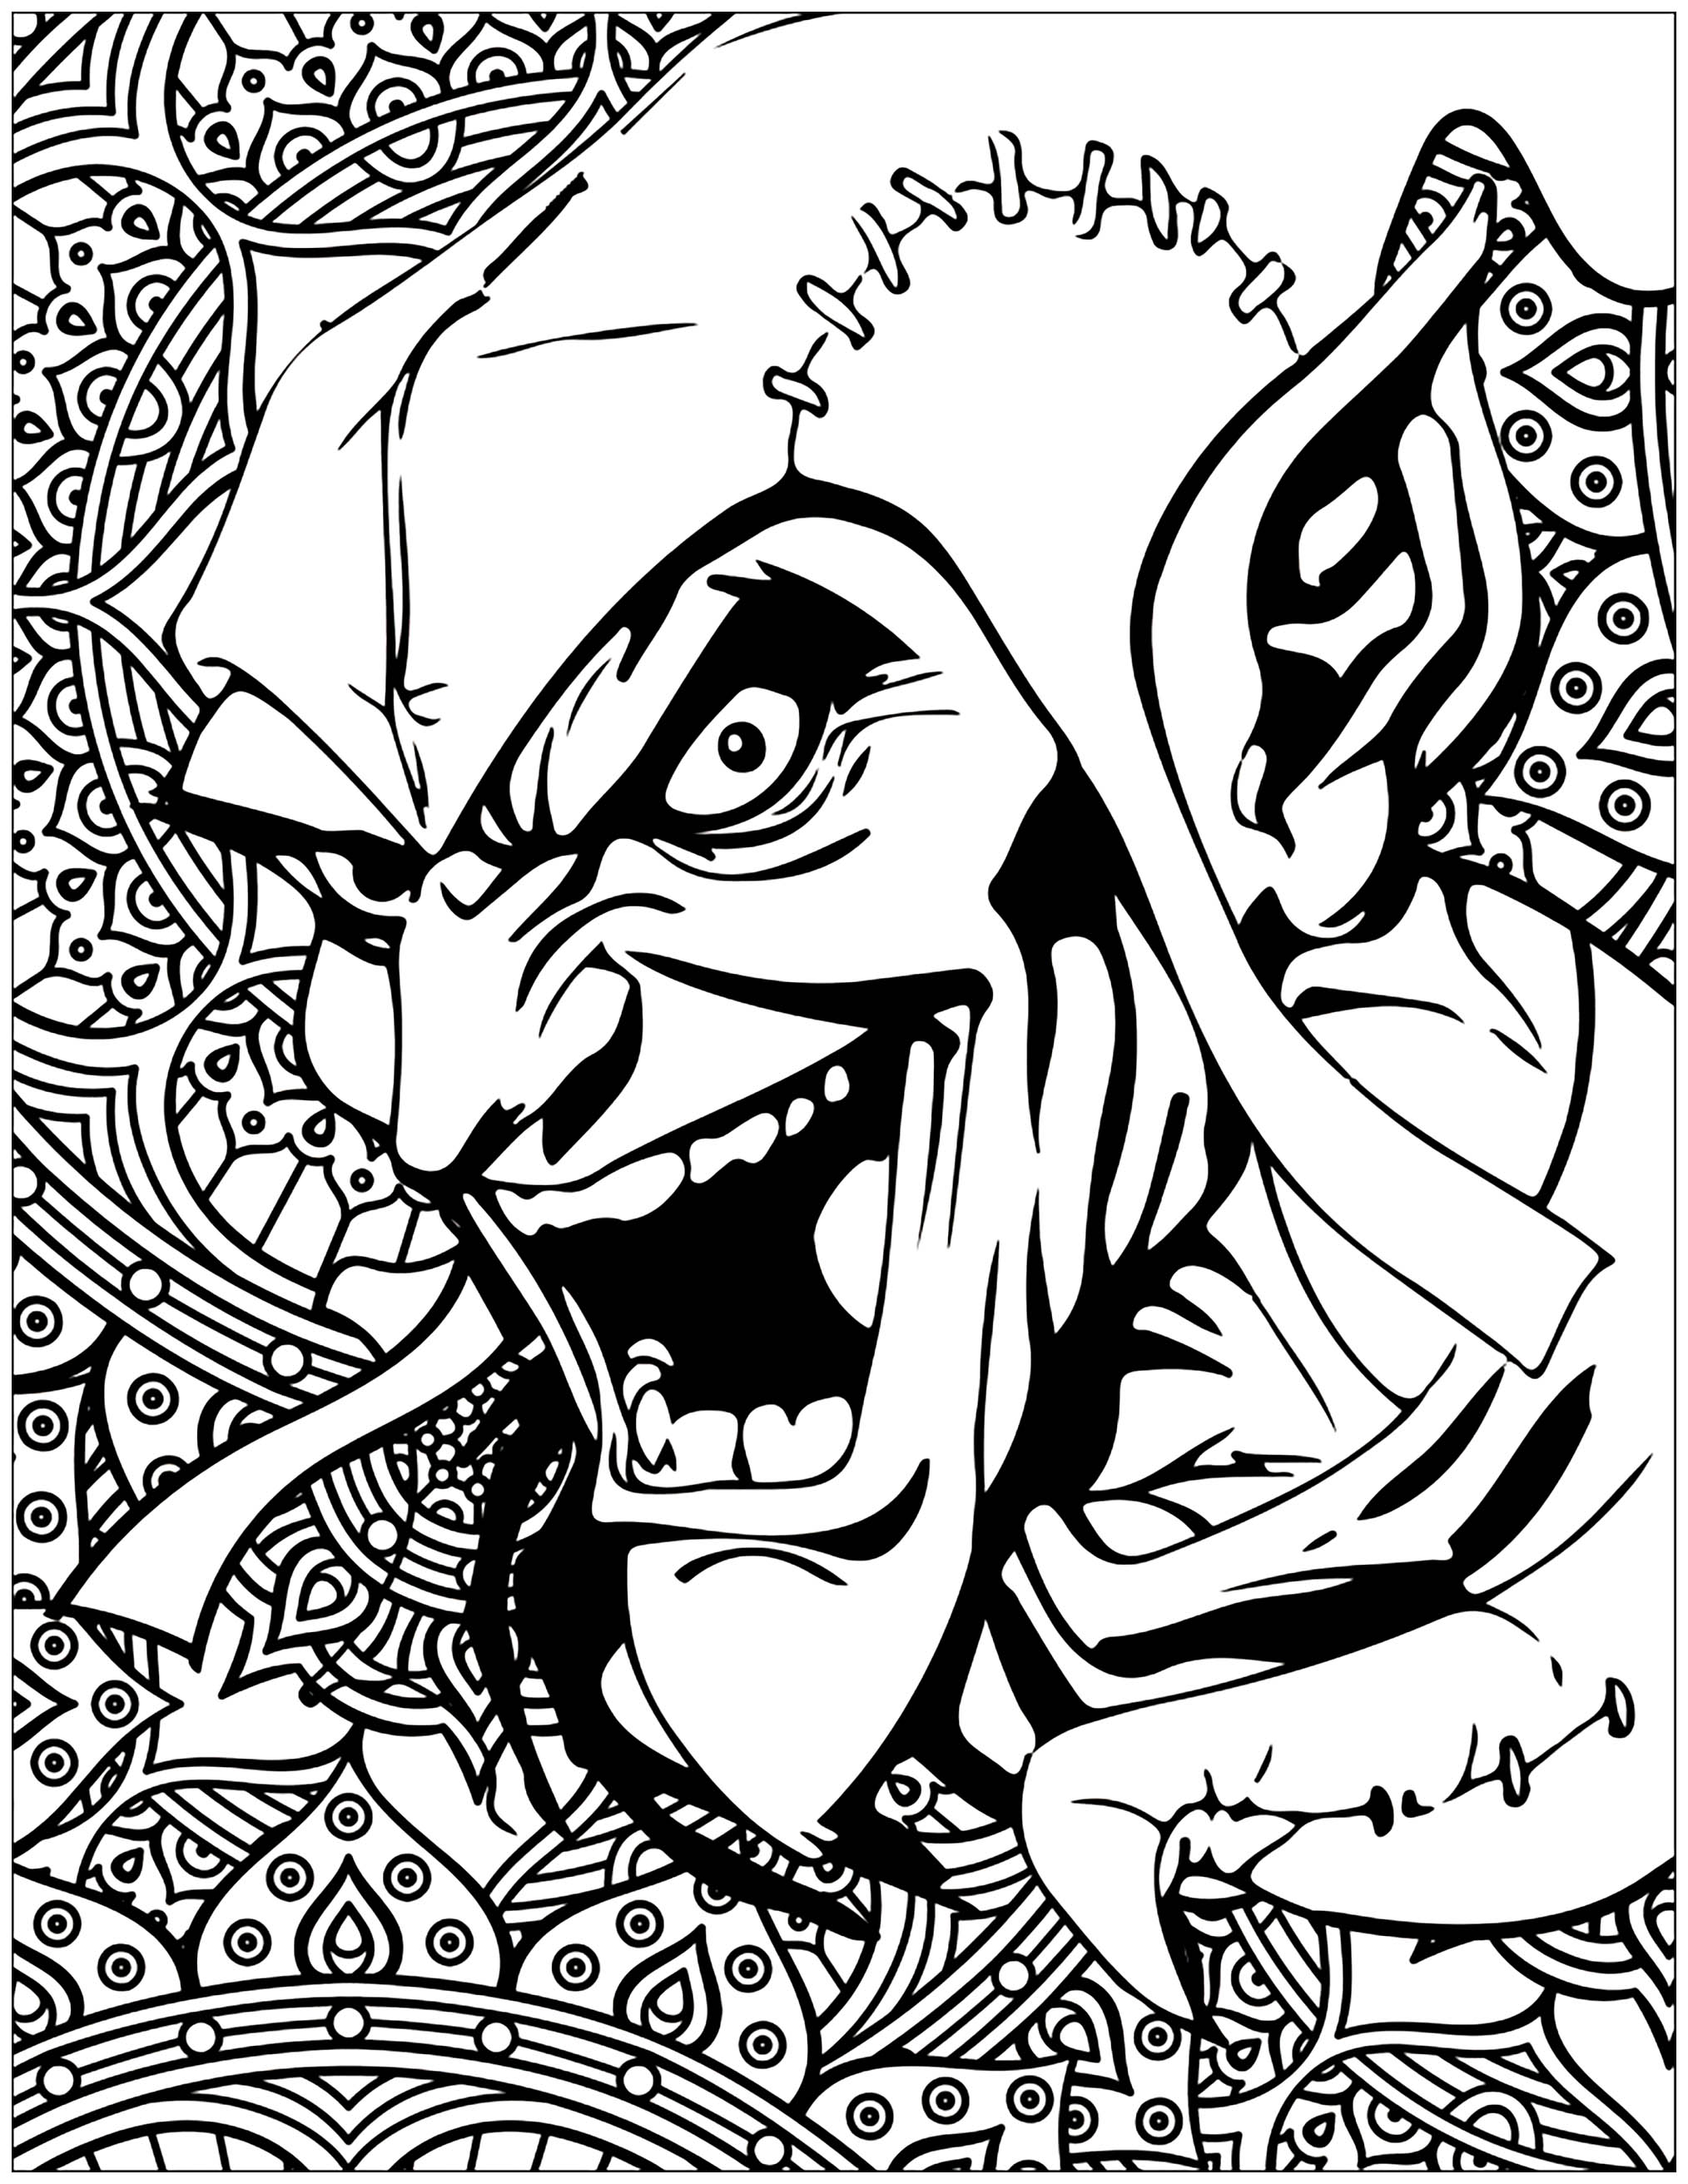 comic book coloring pages 25 dc comics coloring book variant covers revealed ign pages coloring comic book